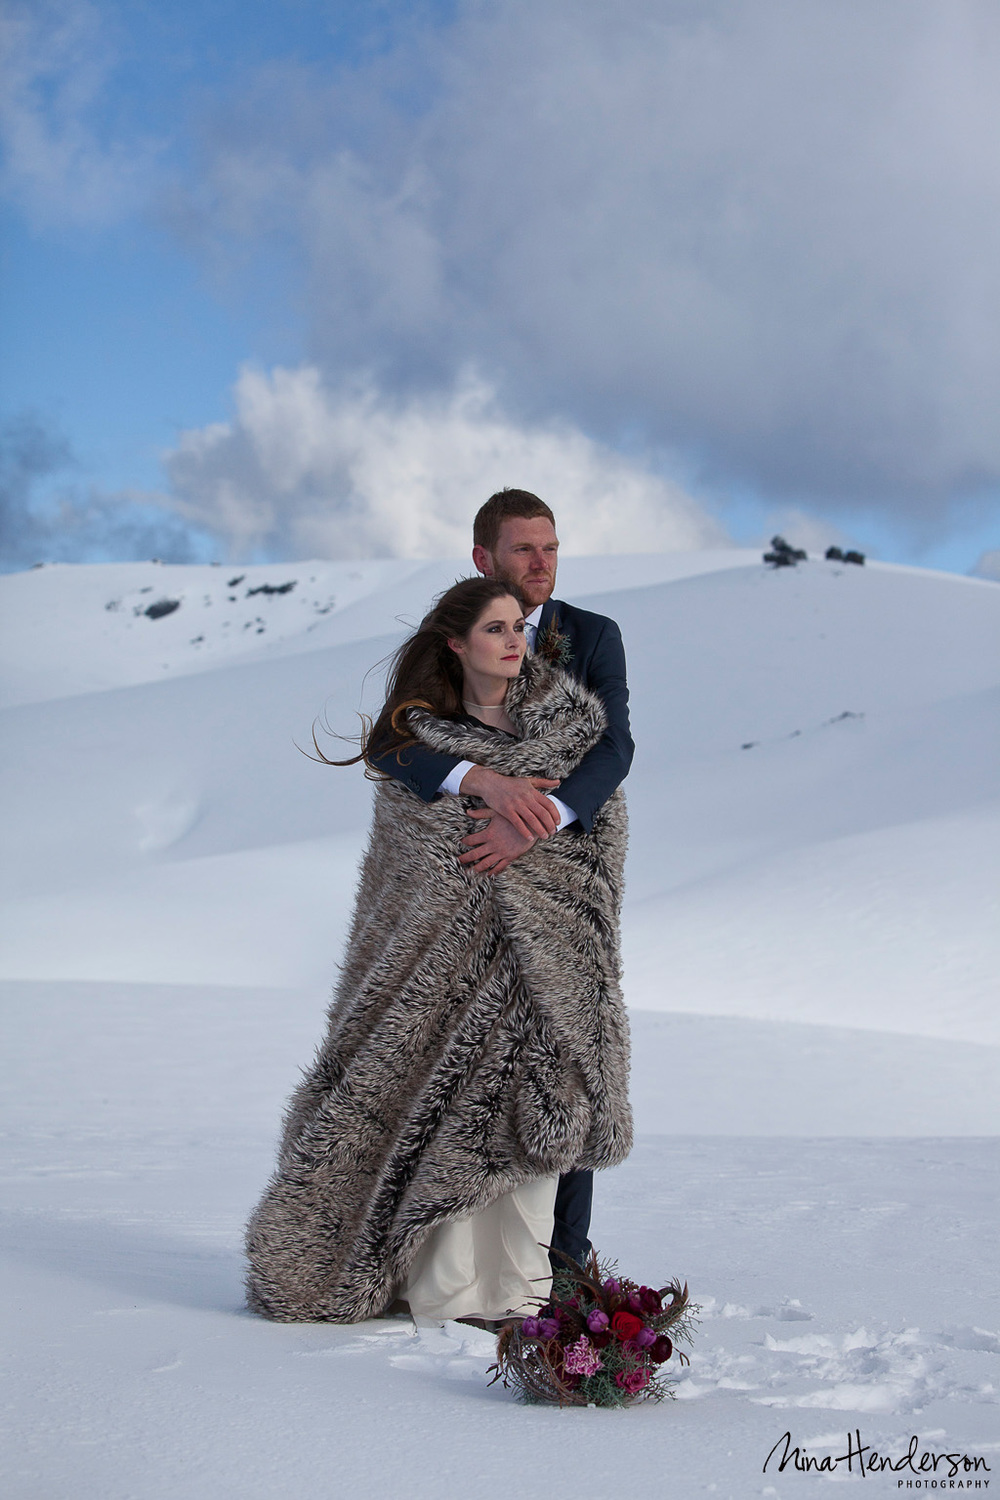 Styled winter wedding photo-shoot_Sept 2015__web + email resized_011.jpg